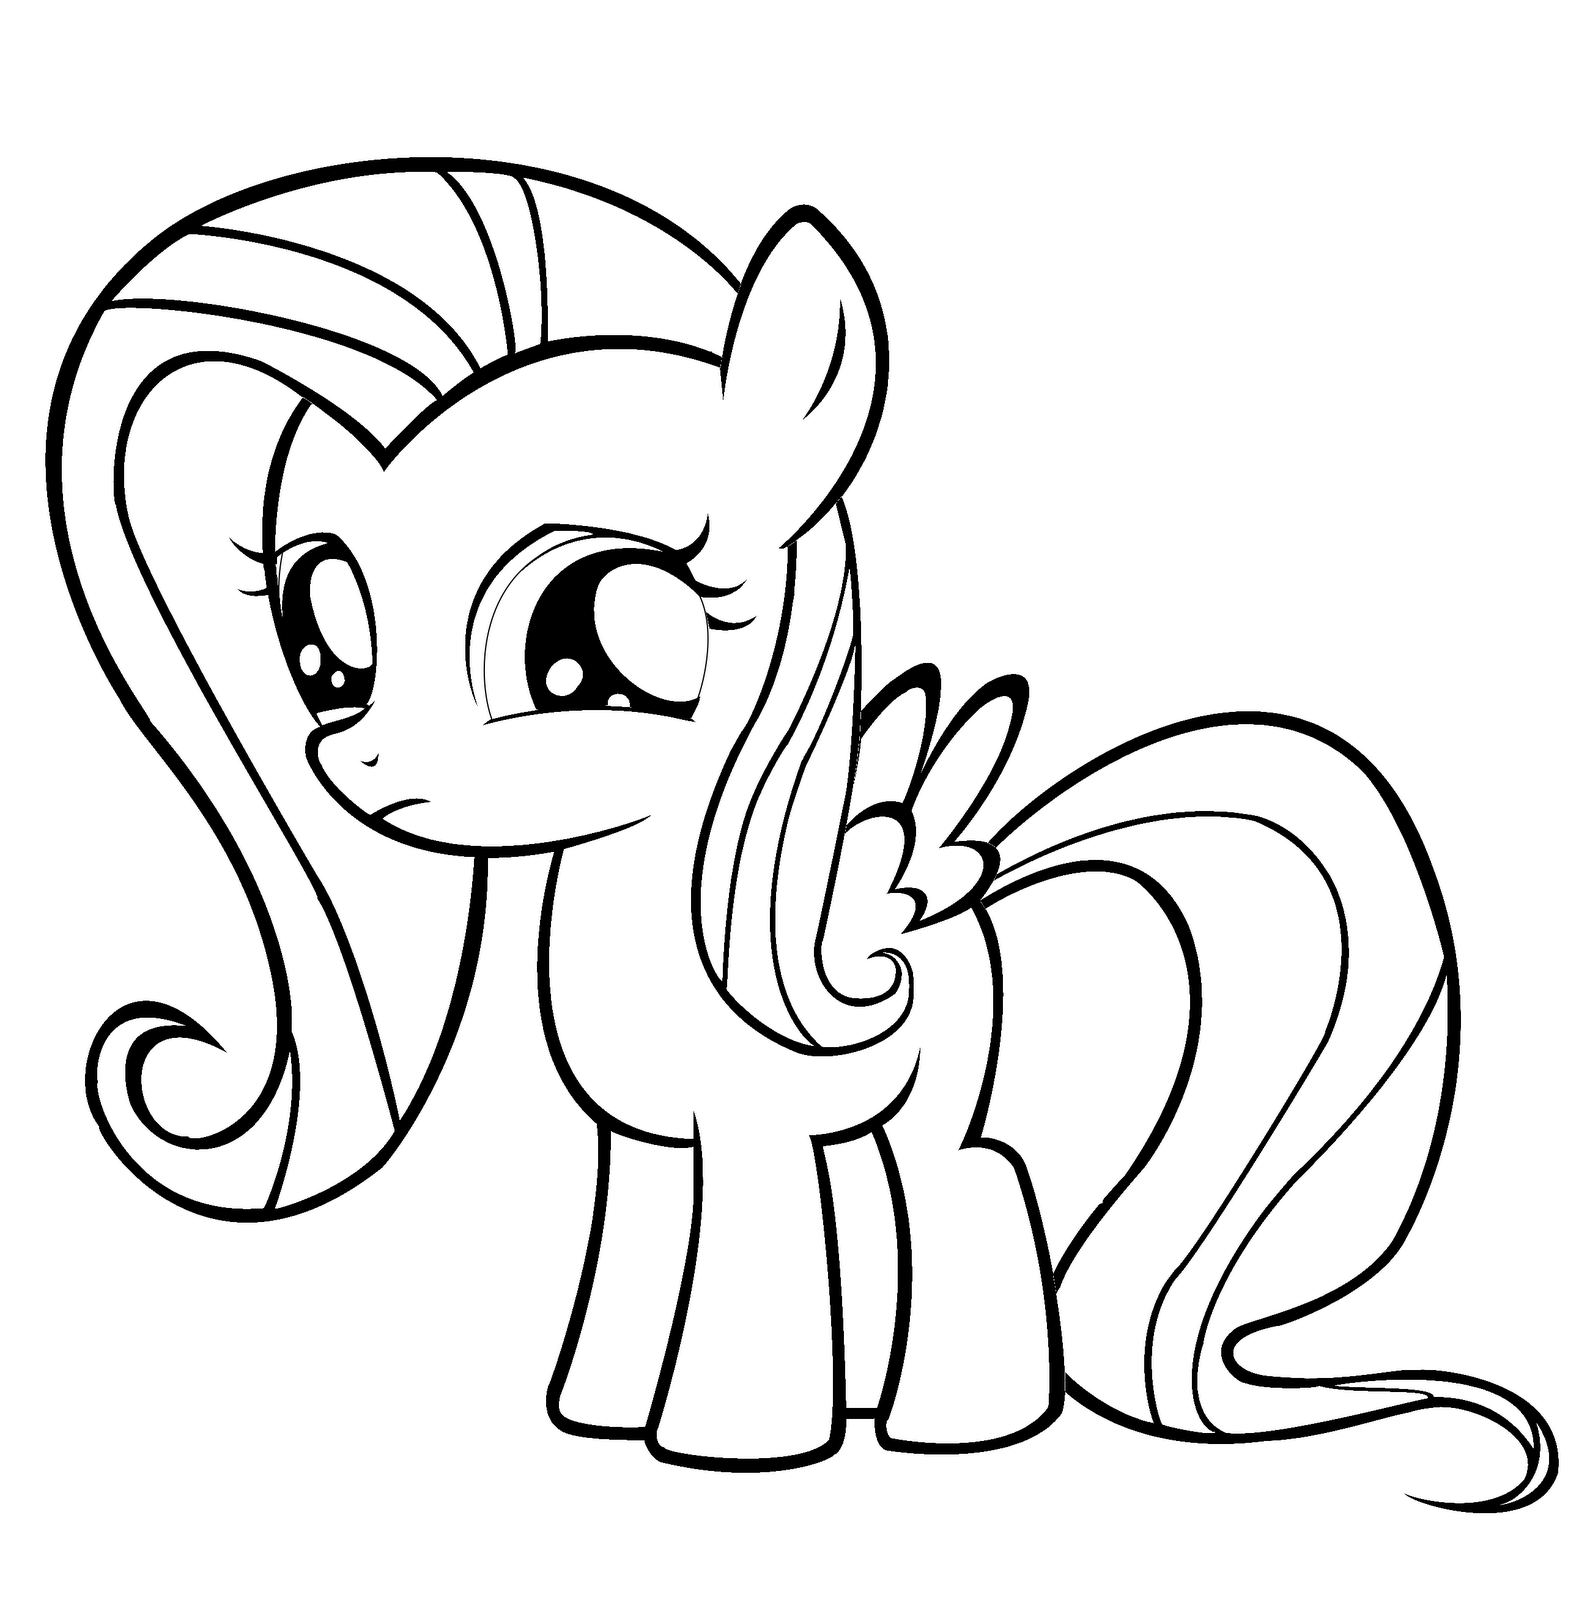 Filly Coloring Pages - Coloring Home